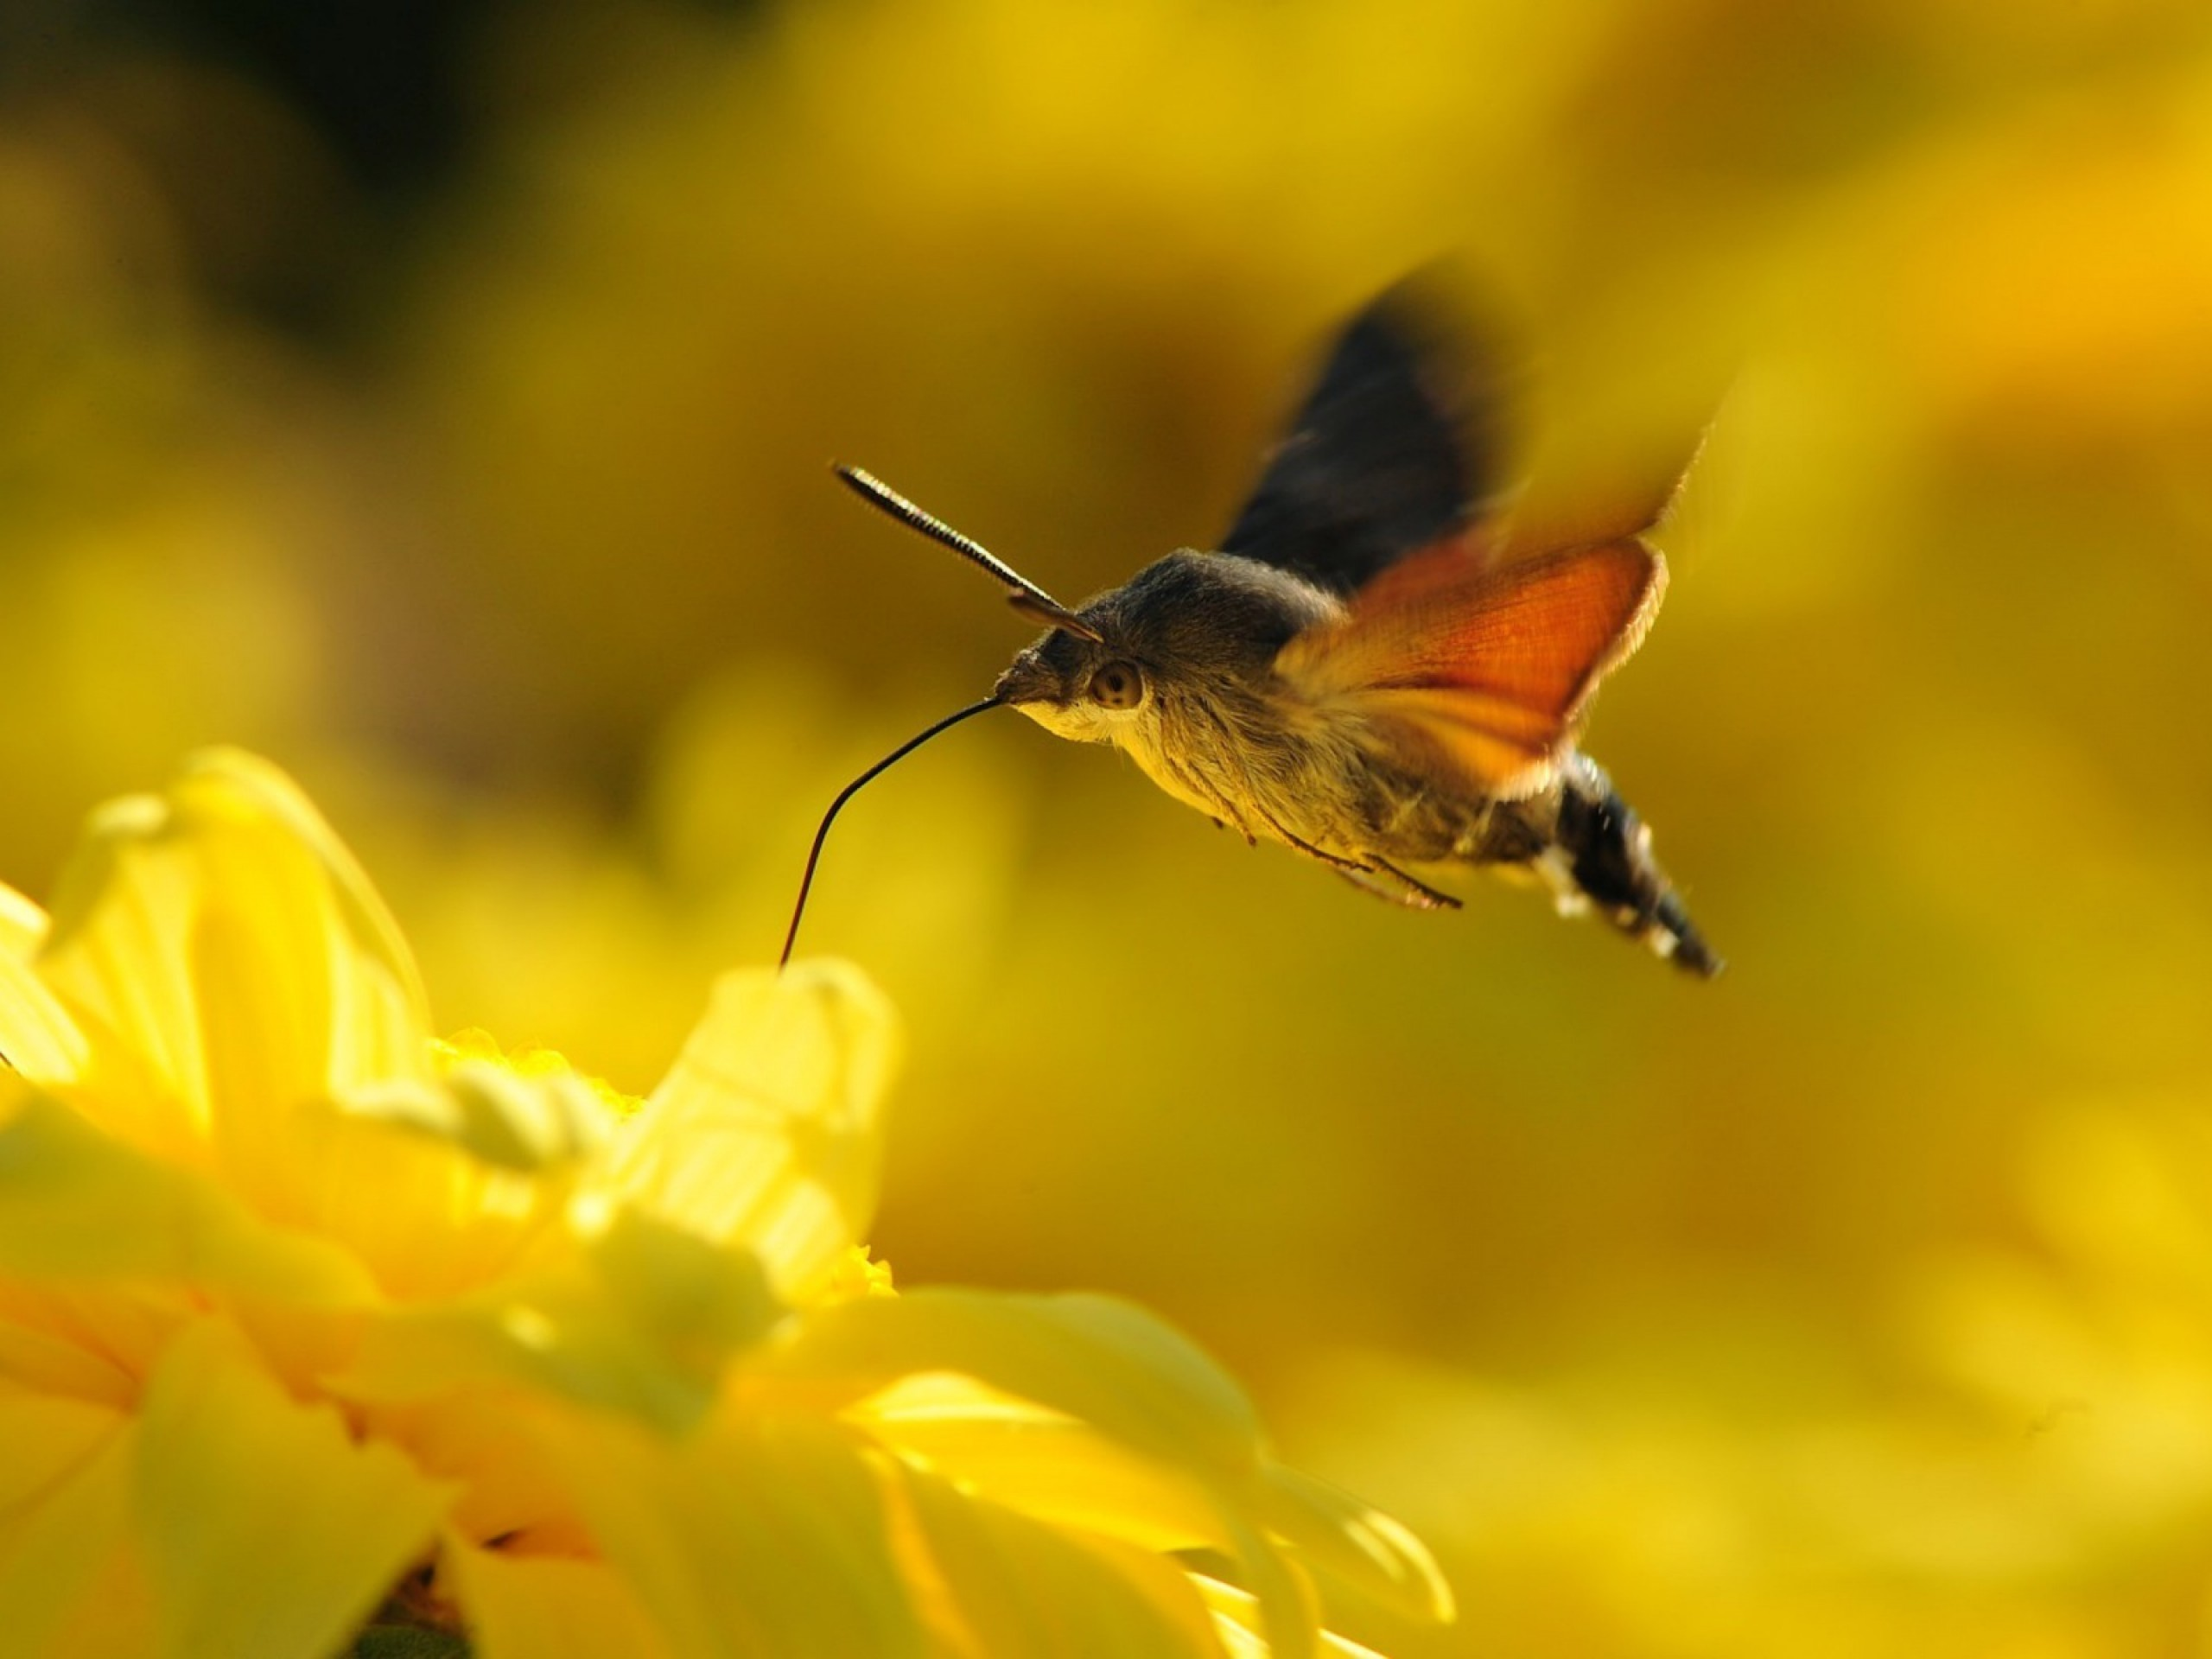 General 2560x1920 animals flowers nature moths yellow flowers insect plants